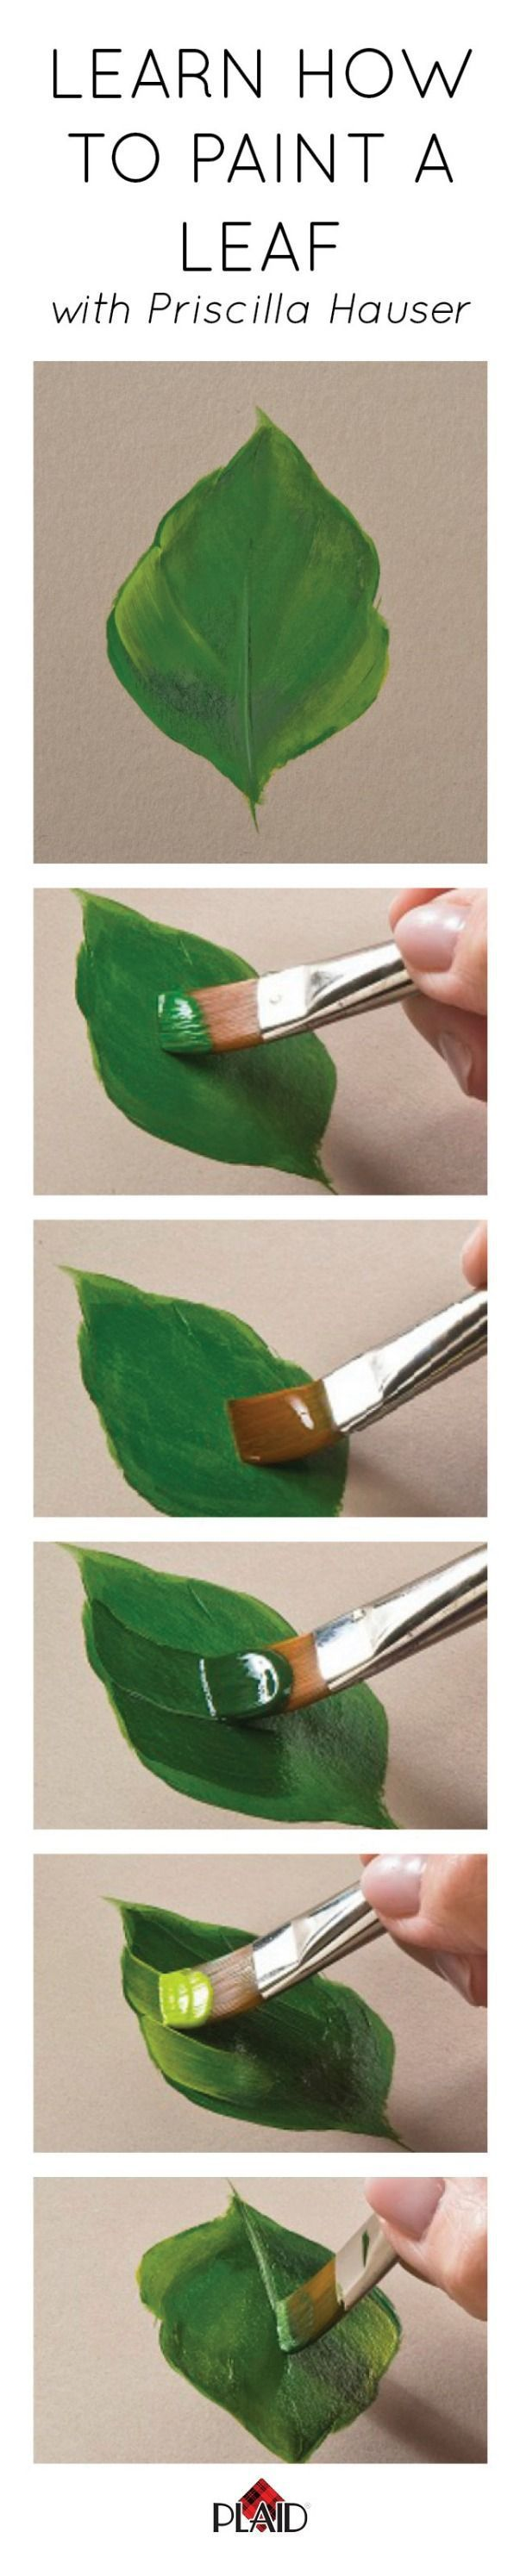 Learn how to paint easy